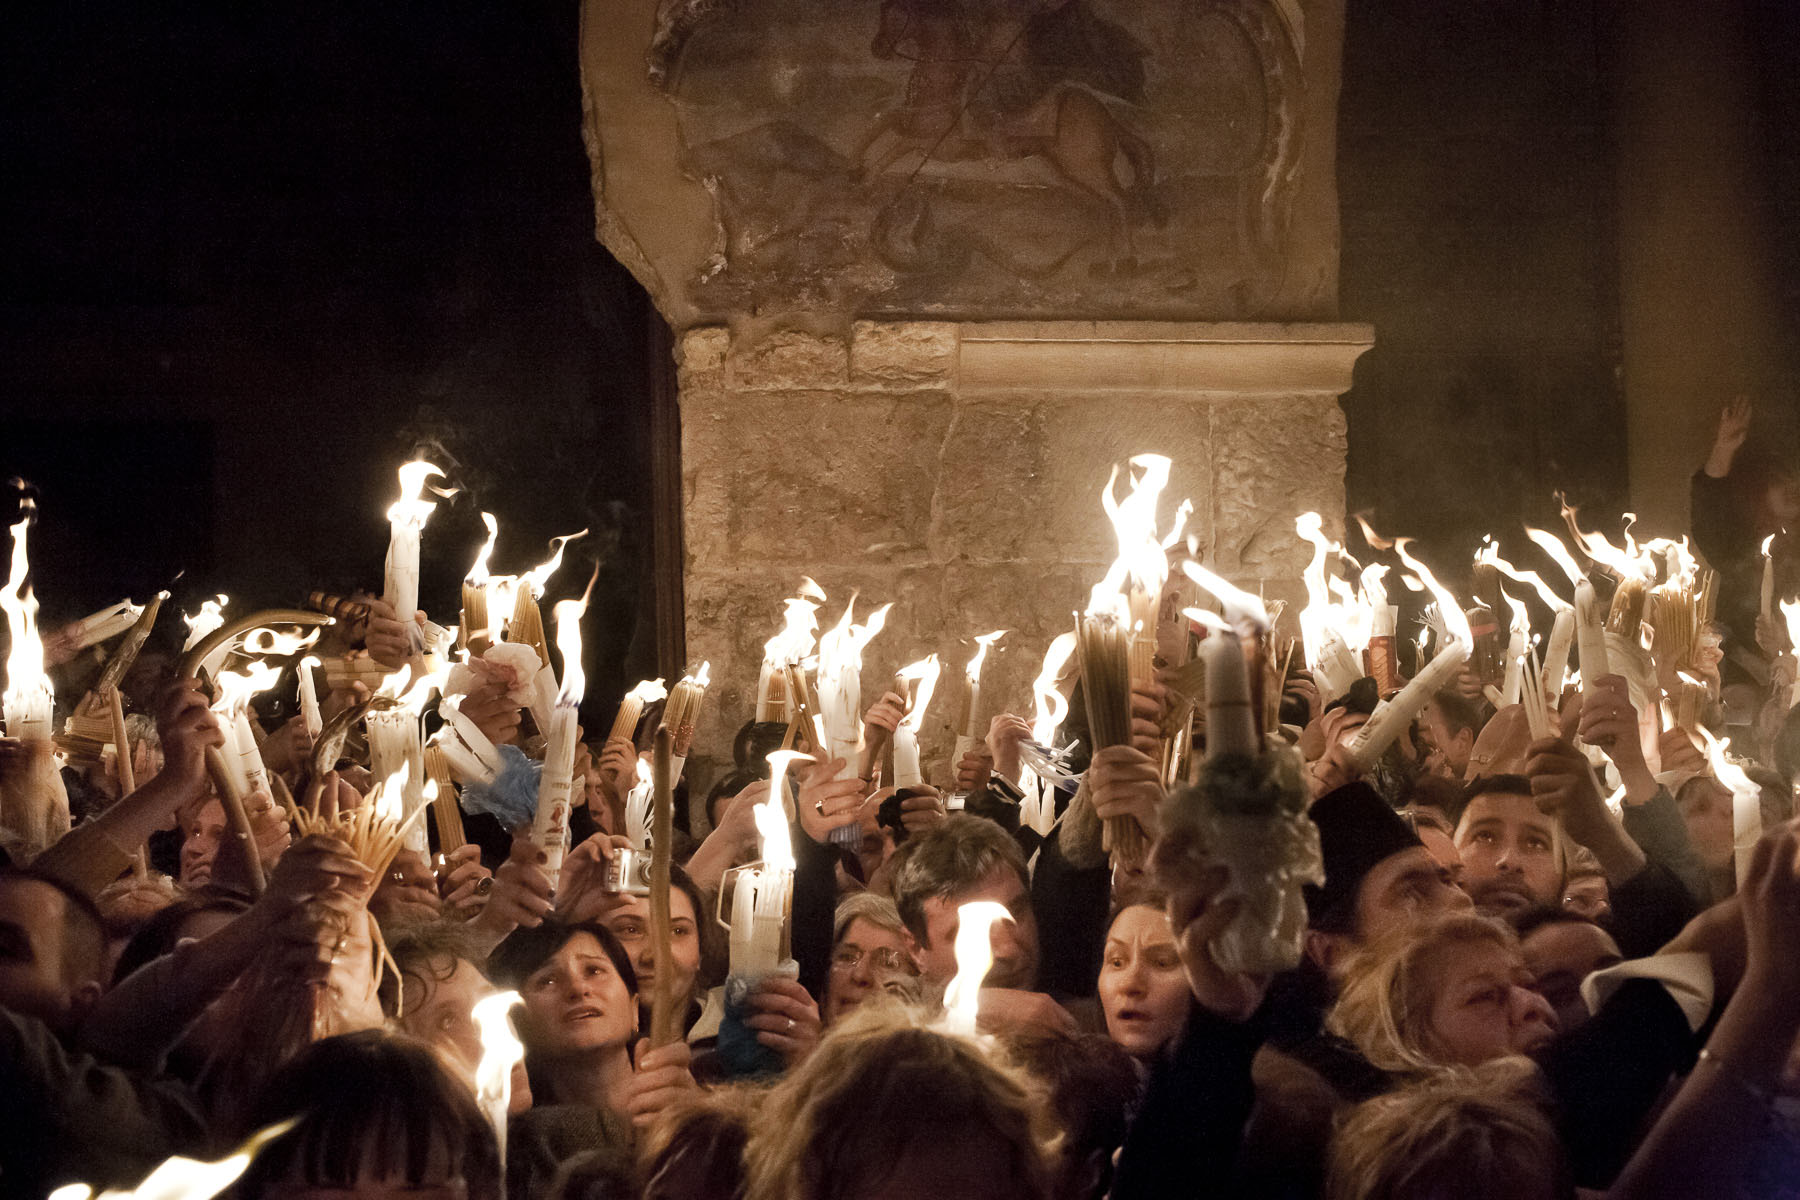 The Holy Fire ceremony on Orthodox Easter Saturday in April 2009